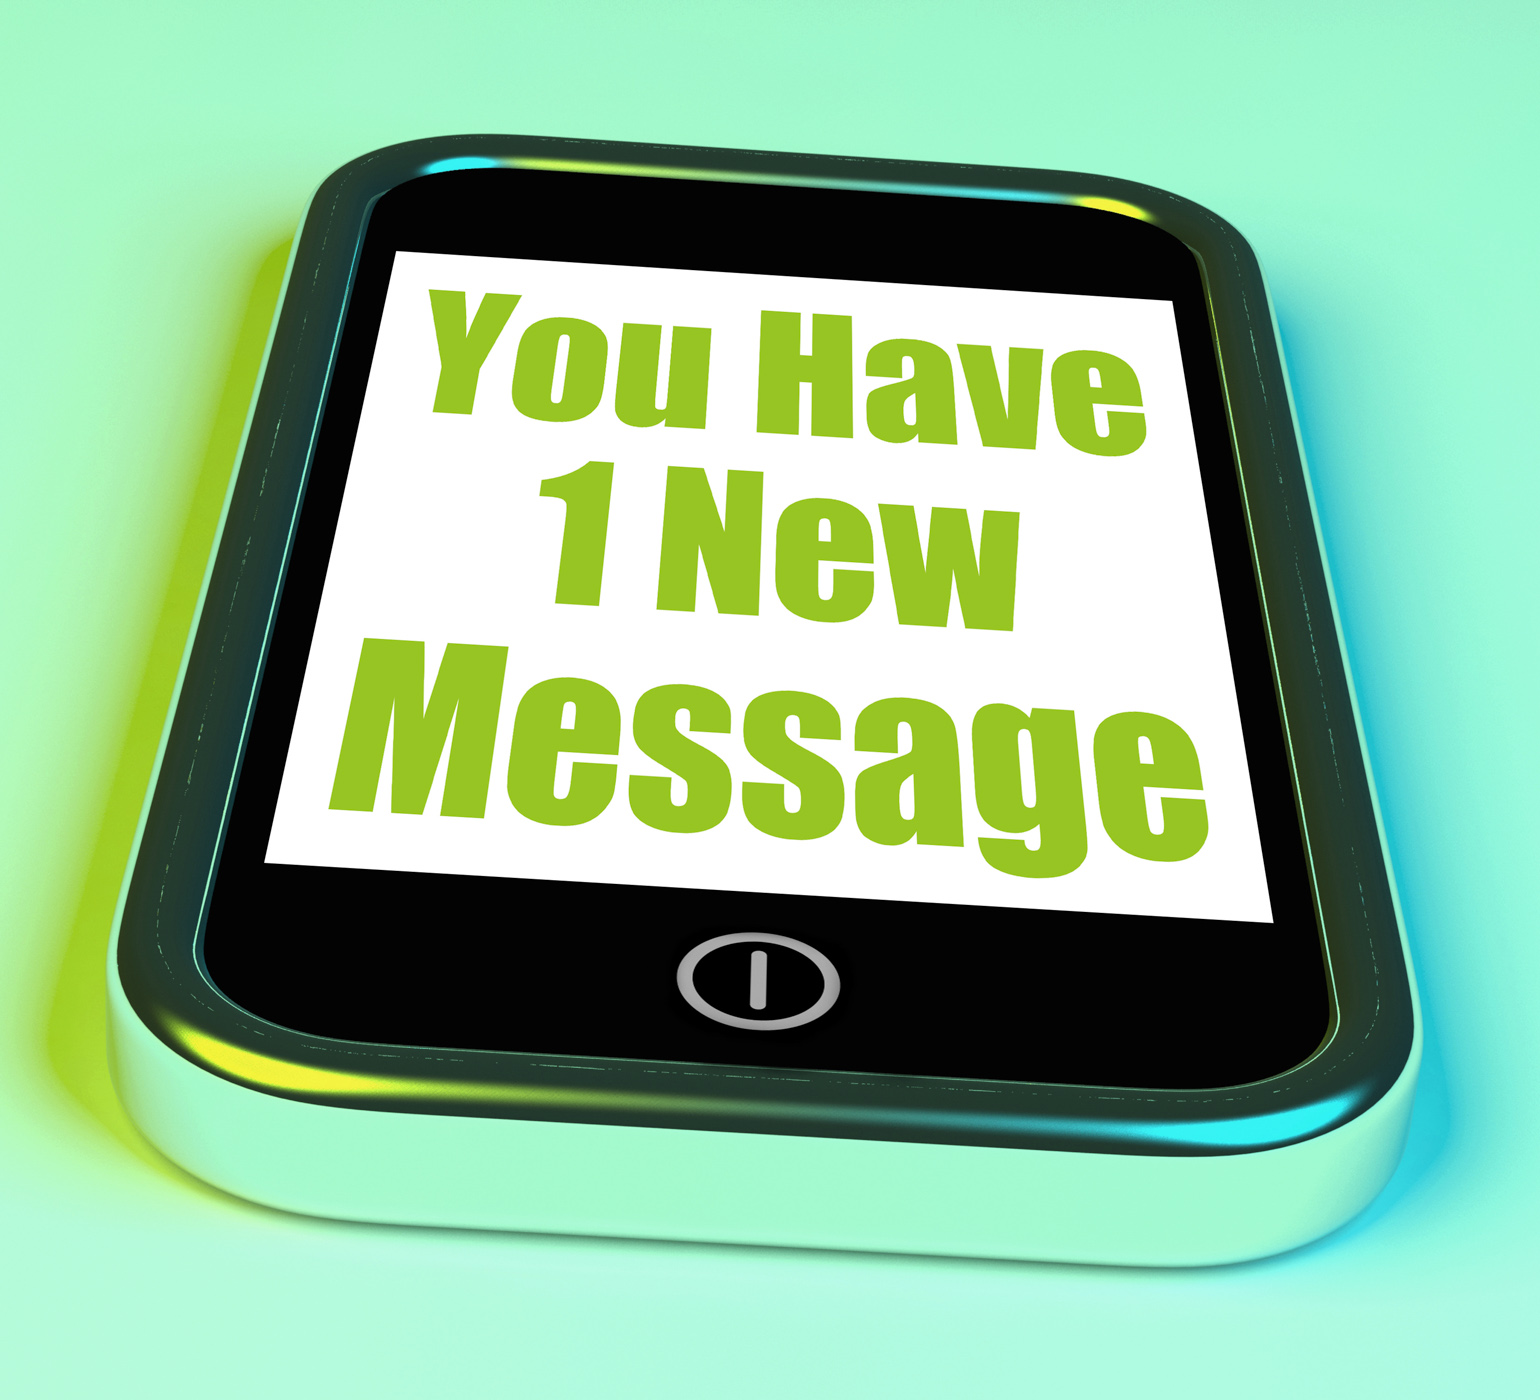 You have 1 new message on phone means new mail photo